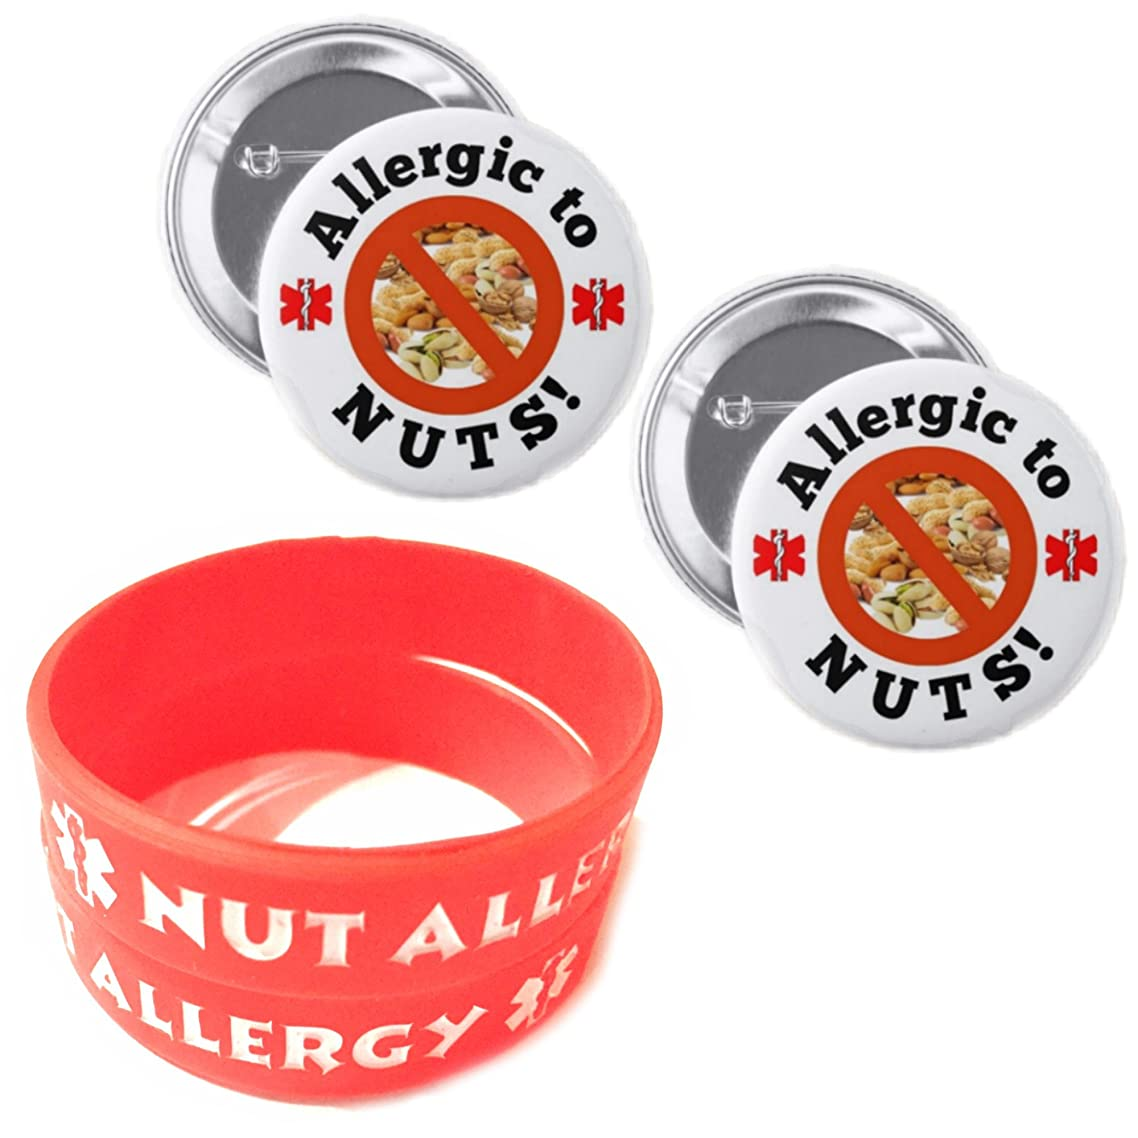 Nut Allergy Bracelets for Kids RED 2pcs Toddler Size/Allergic to Nuts Button Pin 2pcs Medical Alert Bracelets Buttons